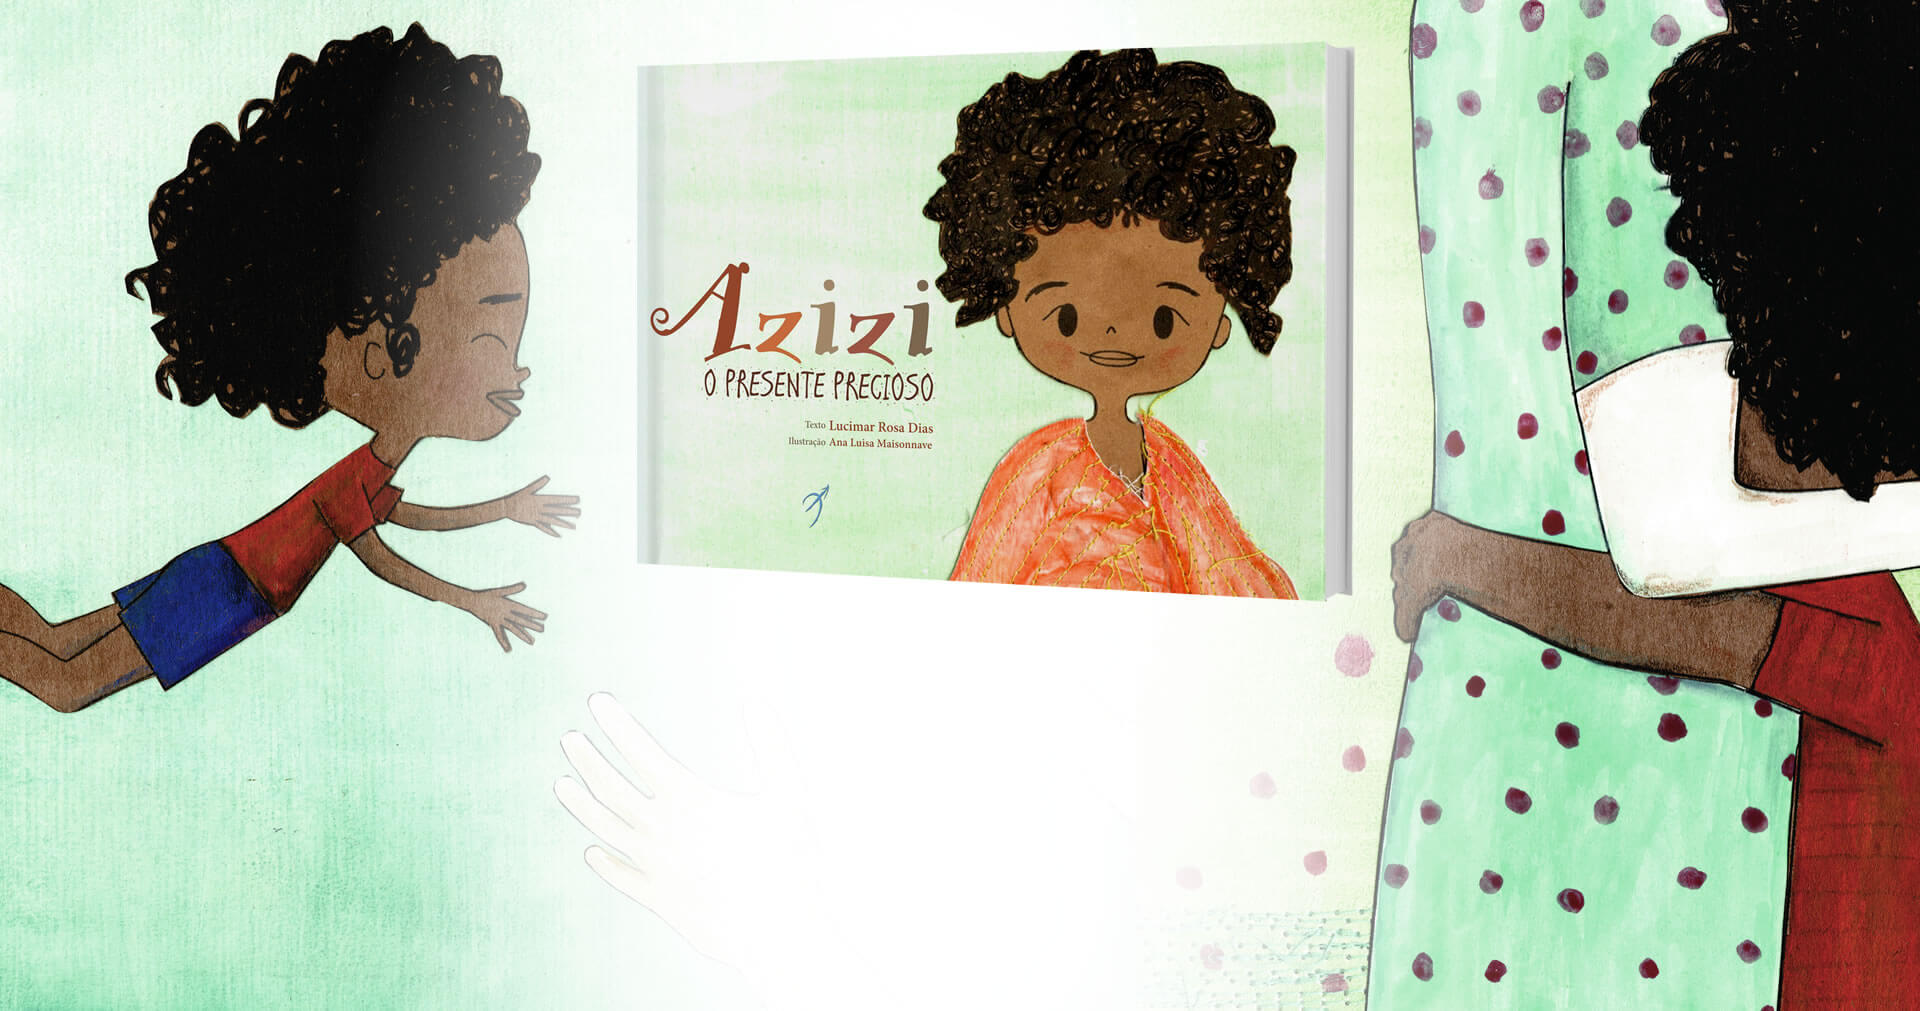 Azizi, the precious gift tells a story of interracial adoption